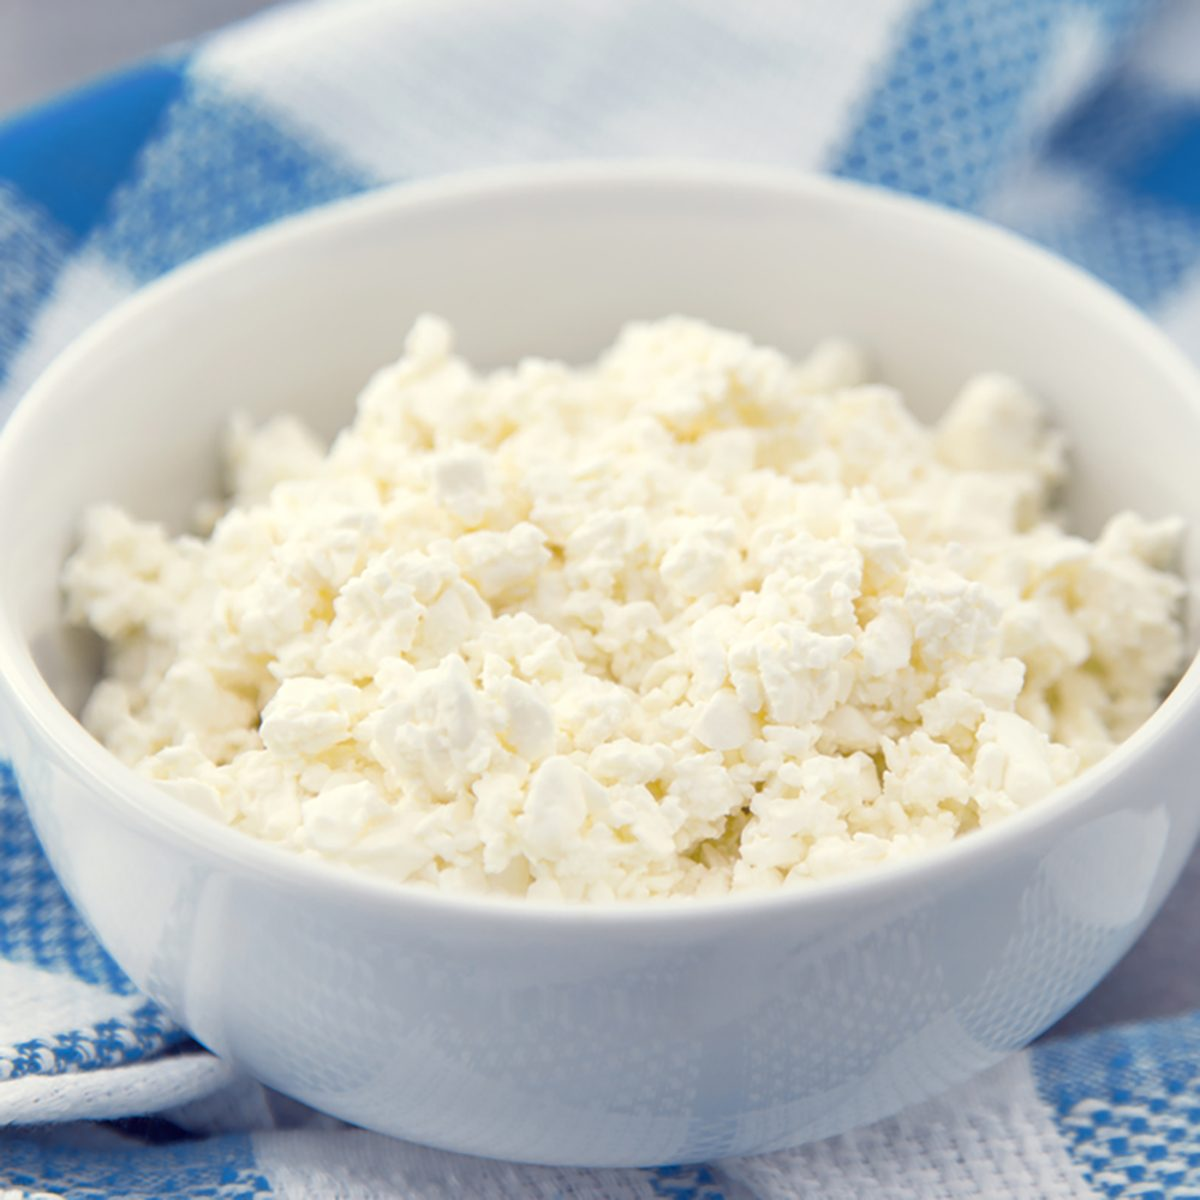 Organic cottage cheese in a white ceramic bowl on the kitchen table. Dairy products for the healthy breakfast.